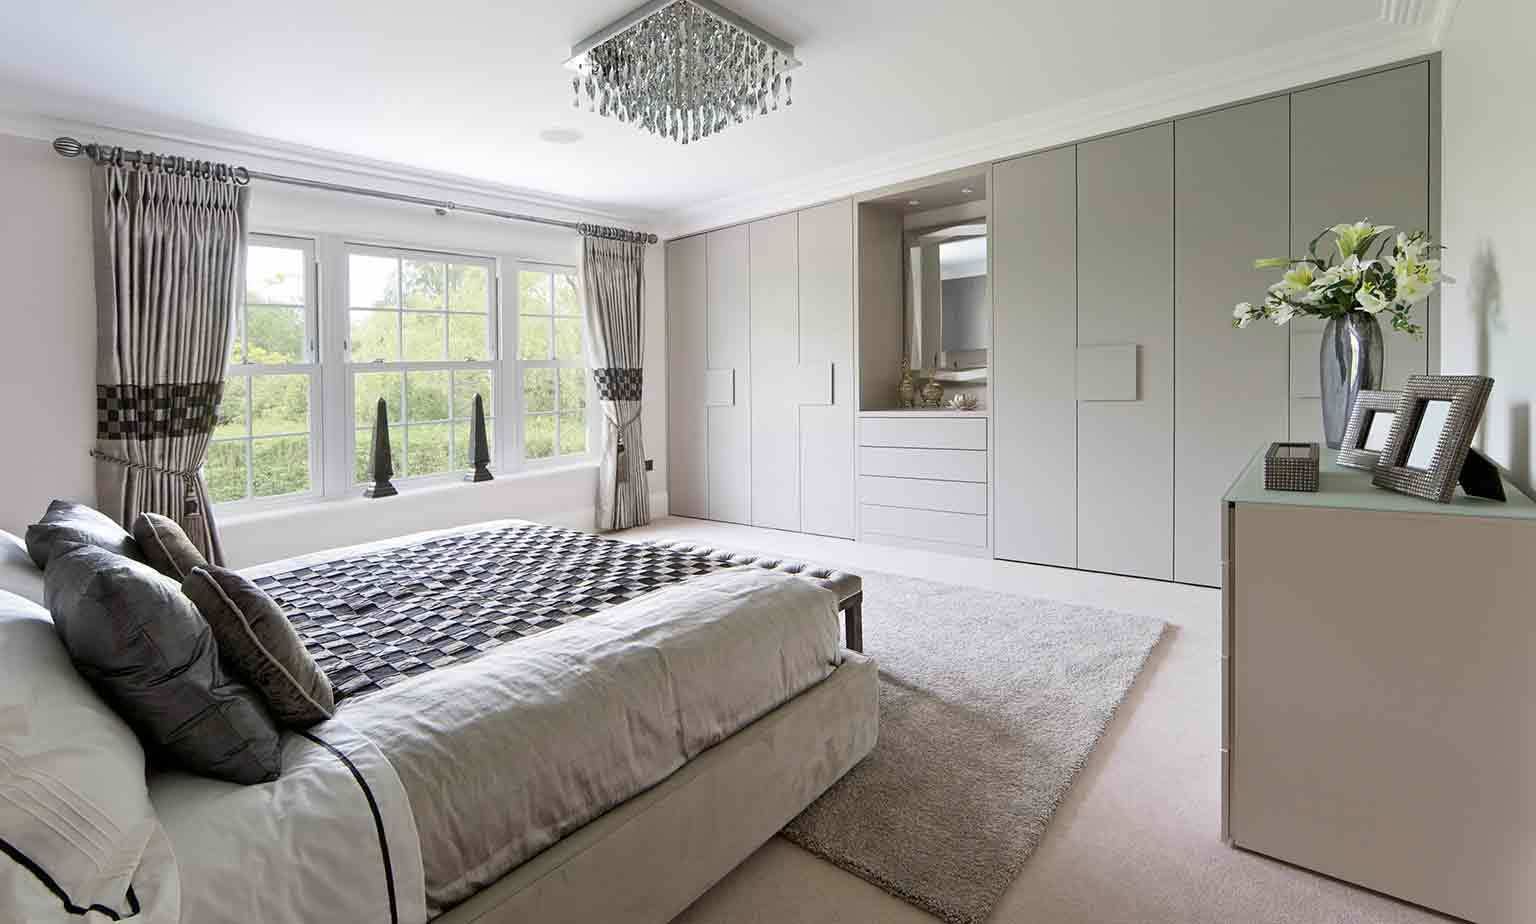 Pics Of Bedroom Furniture Furniture Homeware Sofas Beds Curtains Lighting Ebay